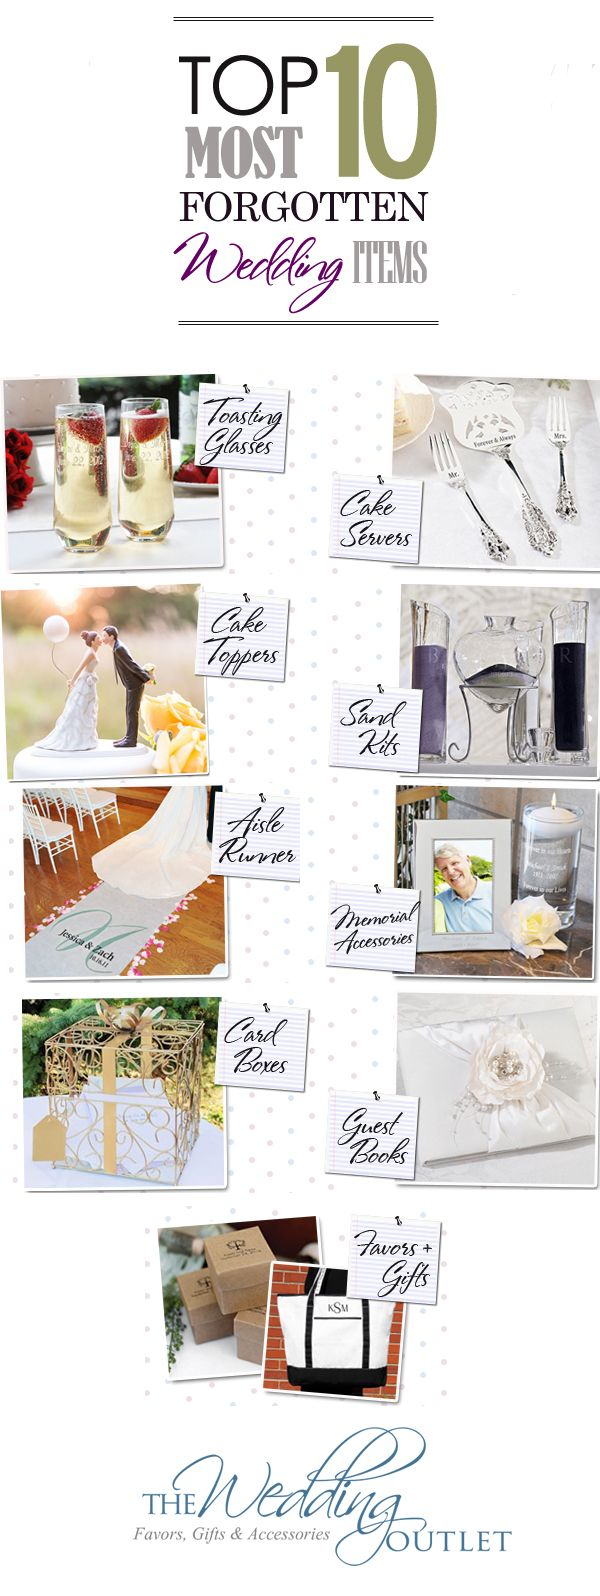 """Don't find yourself without these """"Top 10 Wedding Must Have Accessories"""" on your wedding day. Top wedding accessories you don't want to forget include: guest book, toasting flutes, cake topper, cake server set, card boxes, aisle runner, sand ceremony kit, memorial accessories, favors and bridal party gifts."""